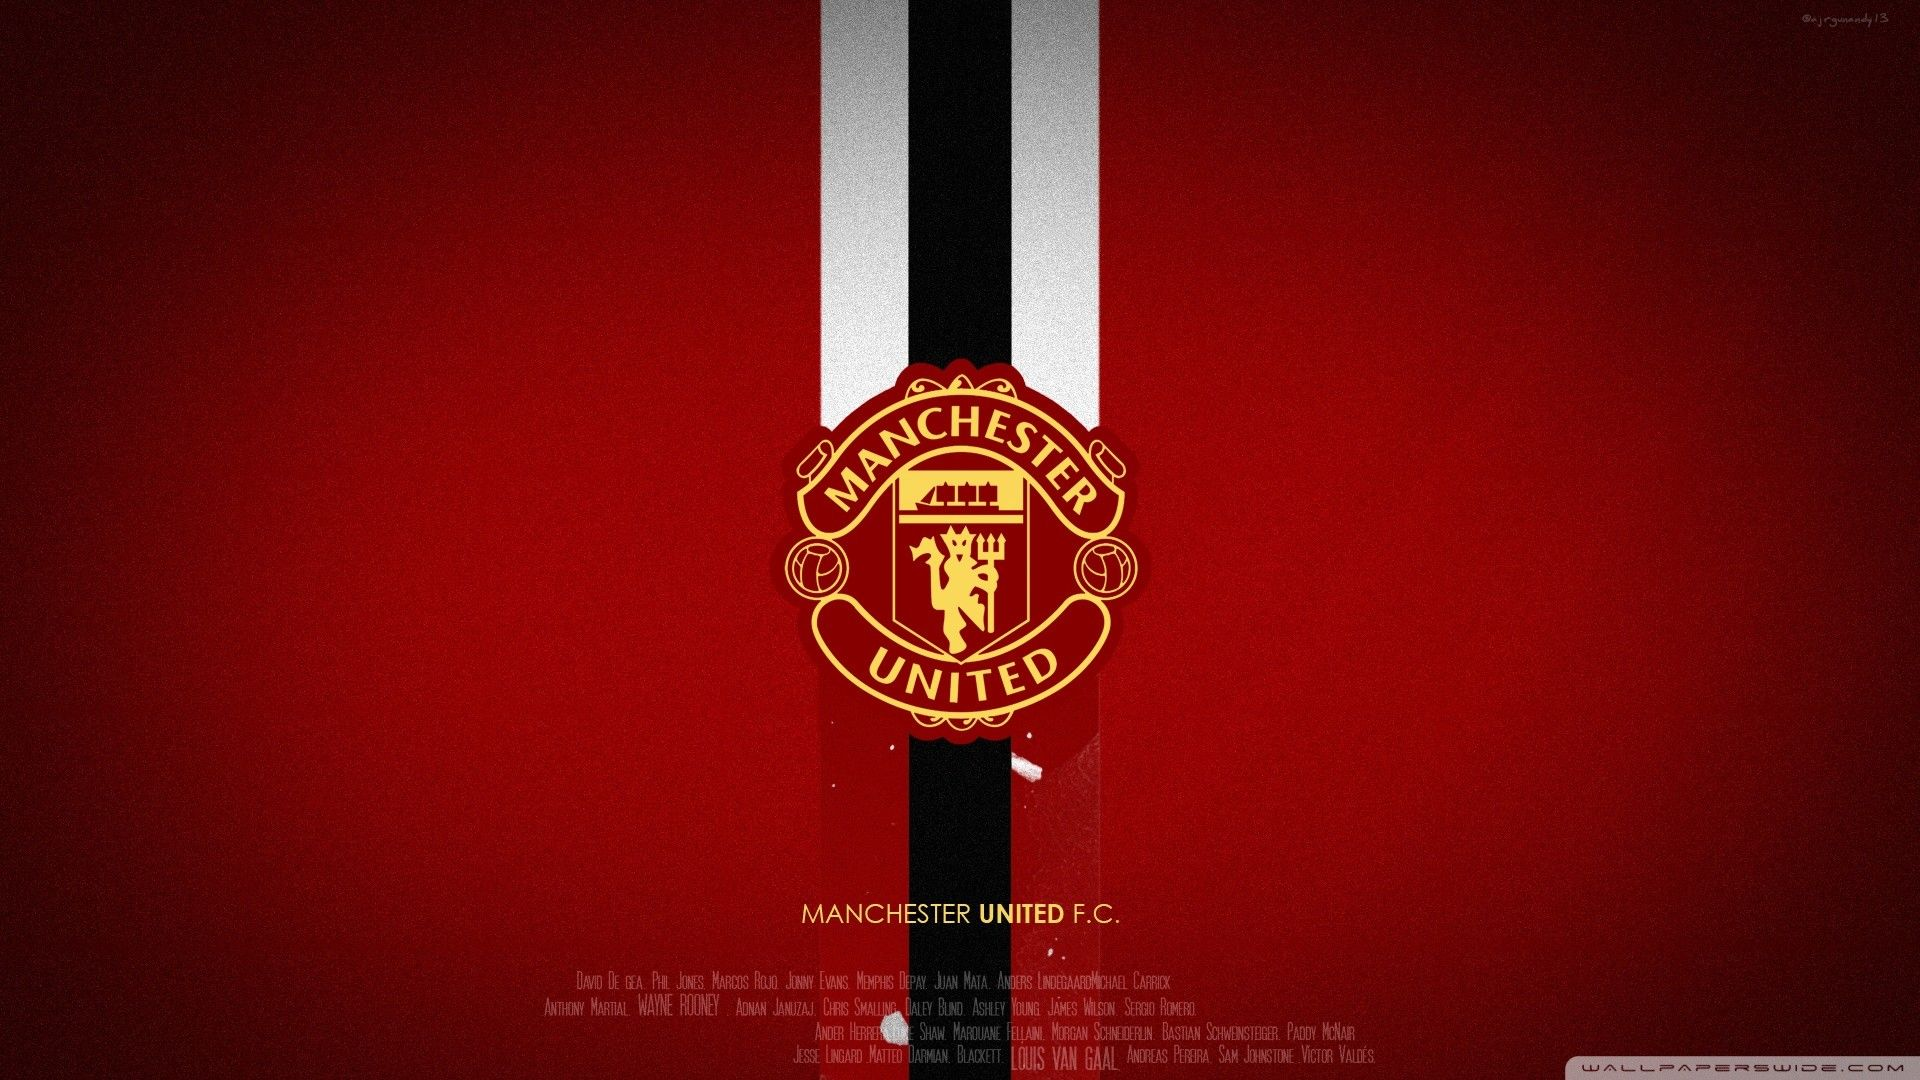 Manchester United Wallpaper Hd 2018 ✓ Wallpaper Directory